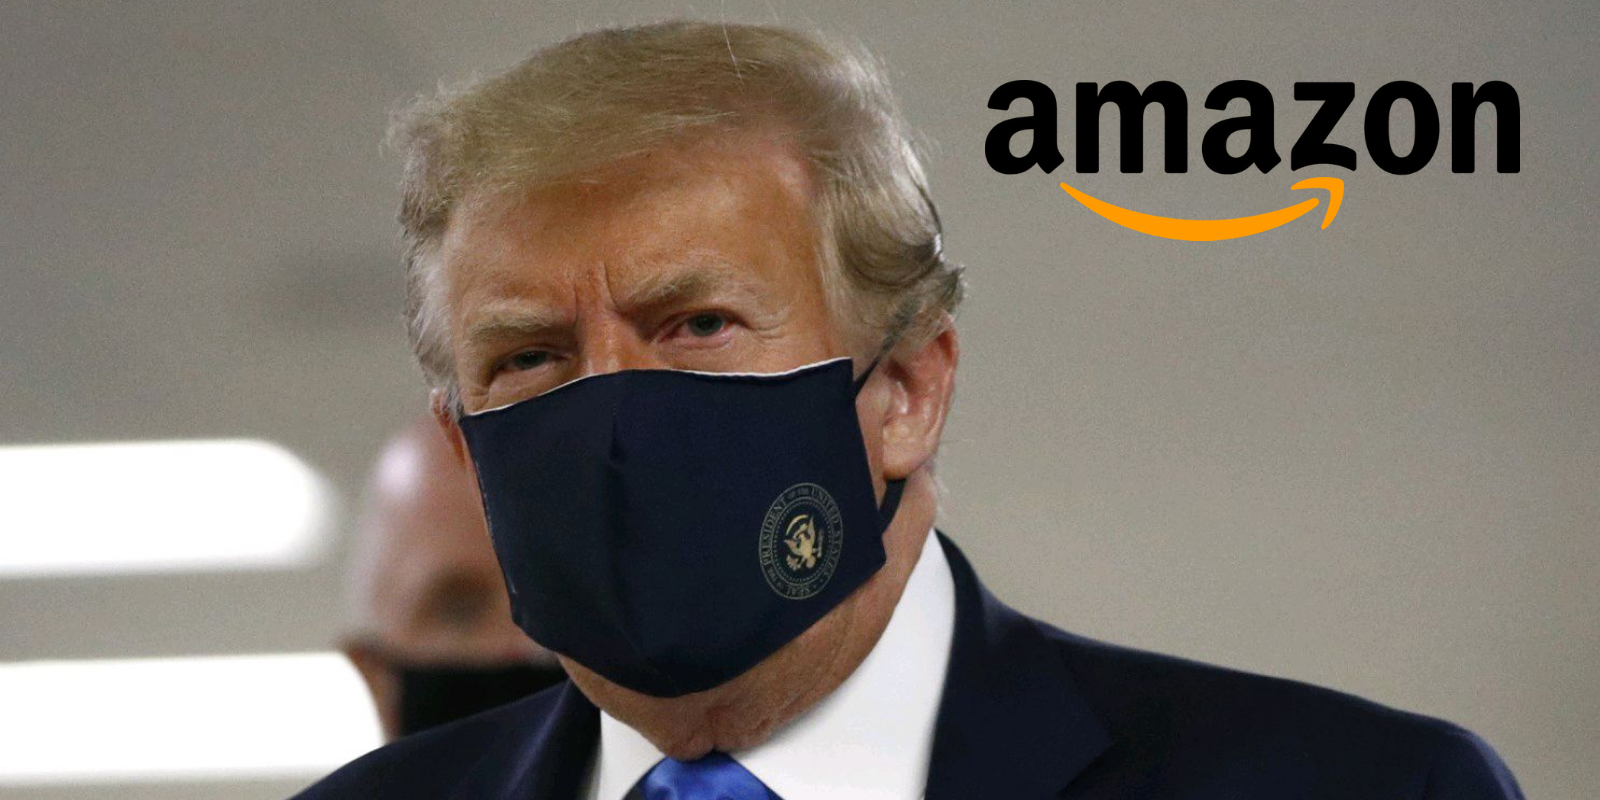 Amazon never offered Trump administration COVID-19 vaccine distribution assistance: ex-officials